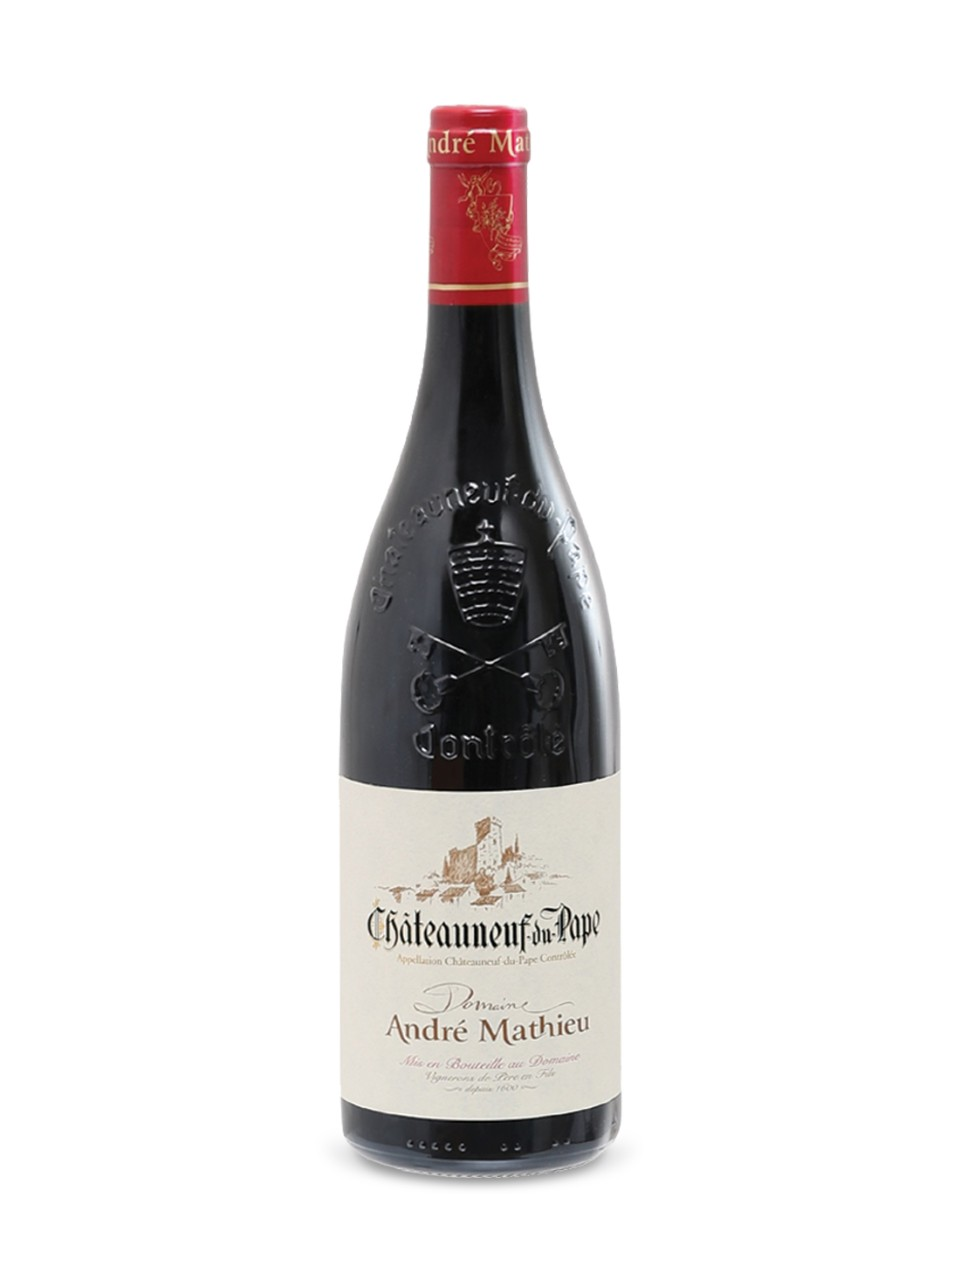 Domaine André Mathieu Cuvée Tradition Châteauneuf-du-Pape 2016 from LCBO